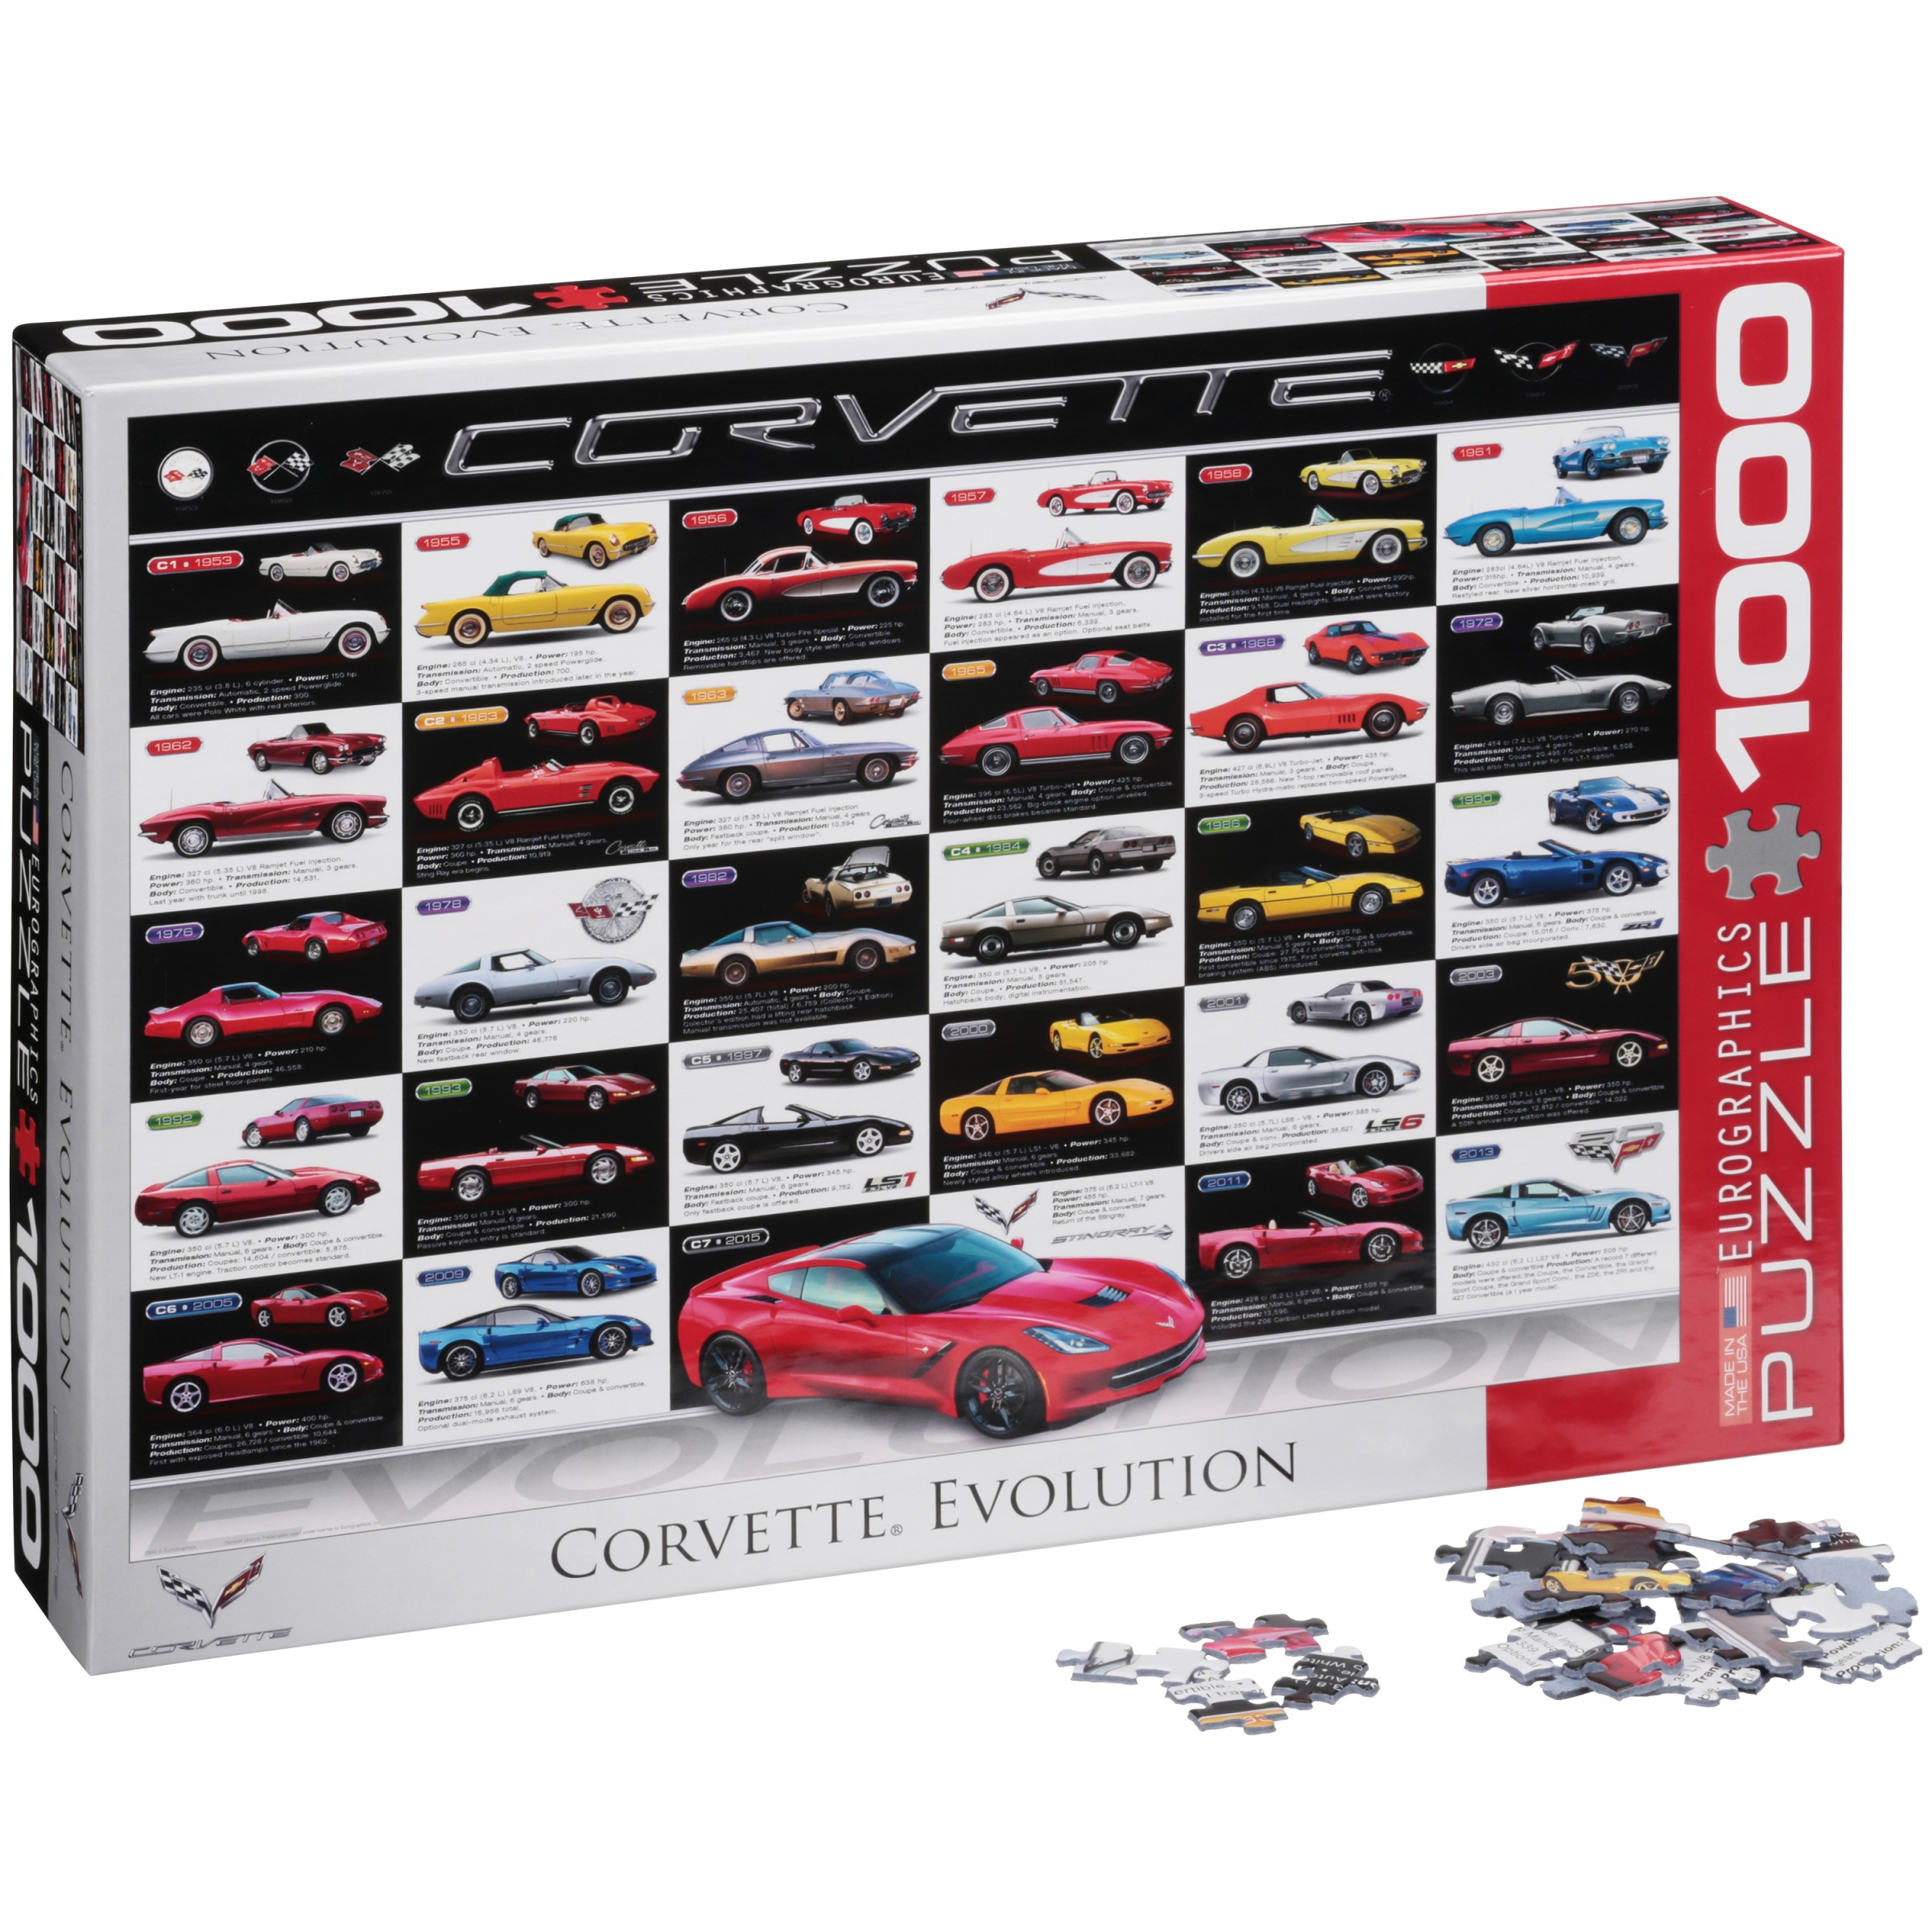 EuroGraphics Corvette Evolution Jigsaw Puzzle 1000 pc Box